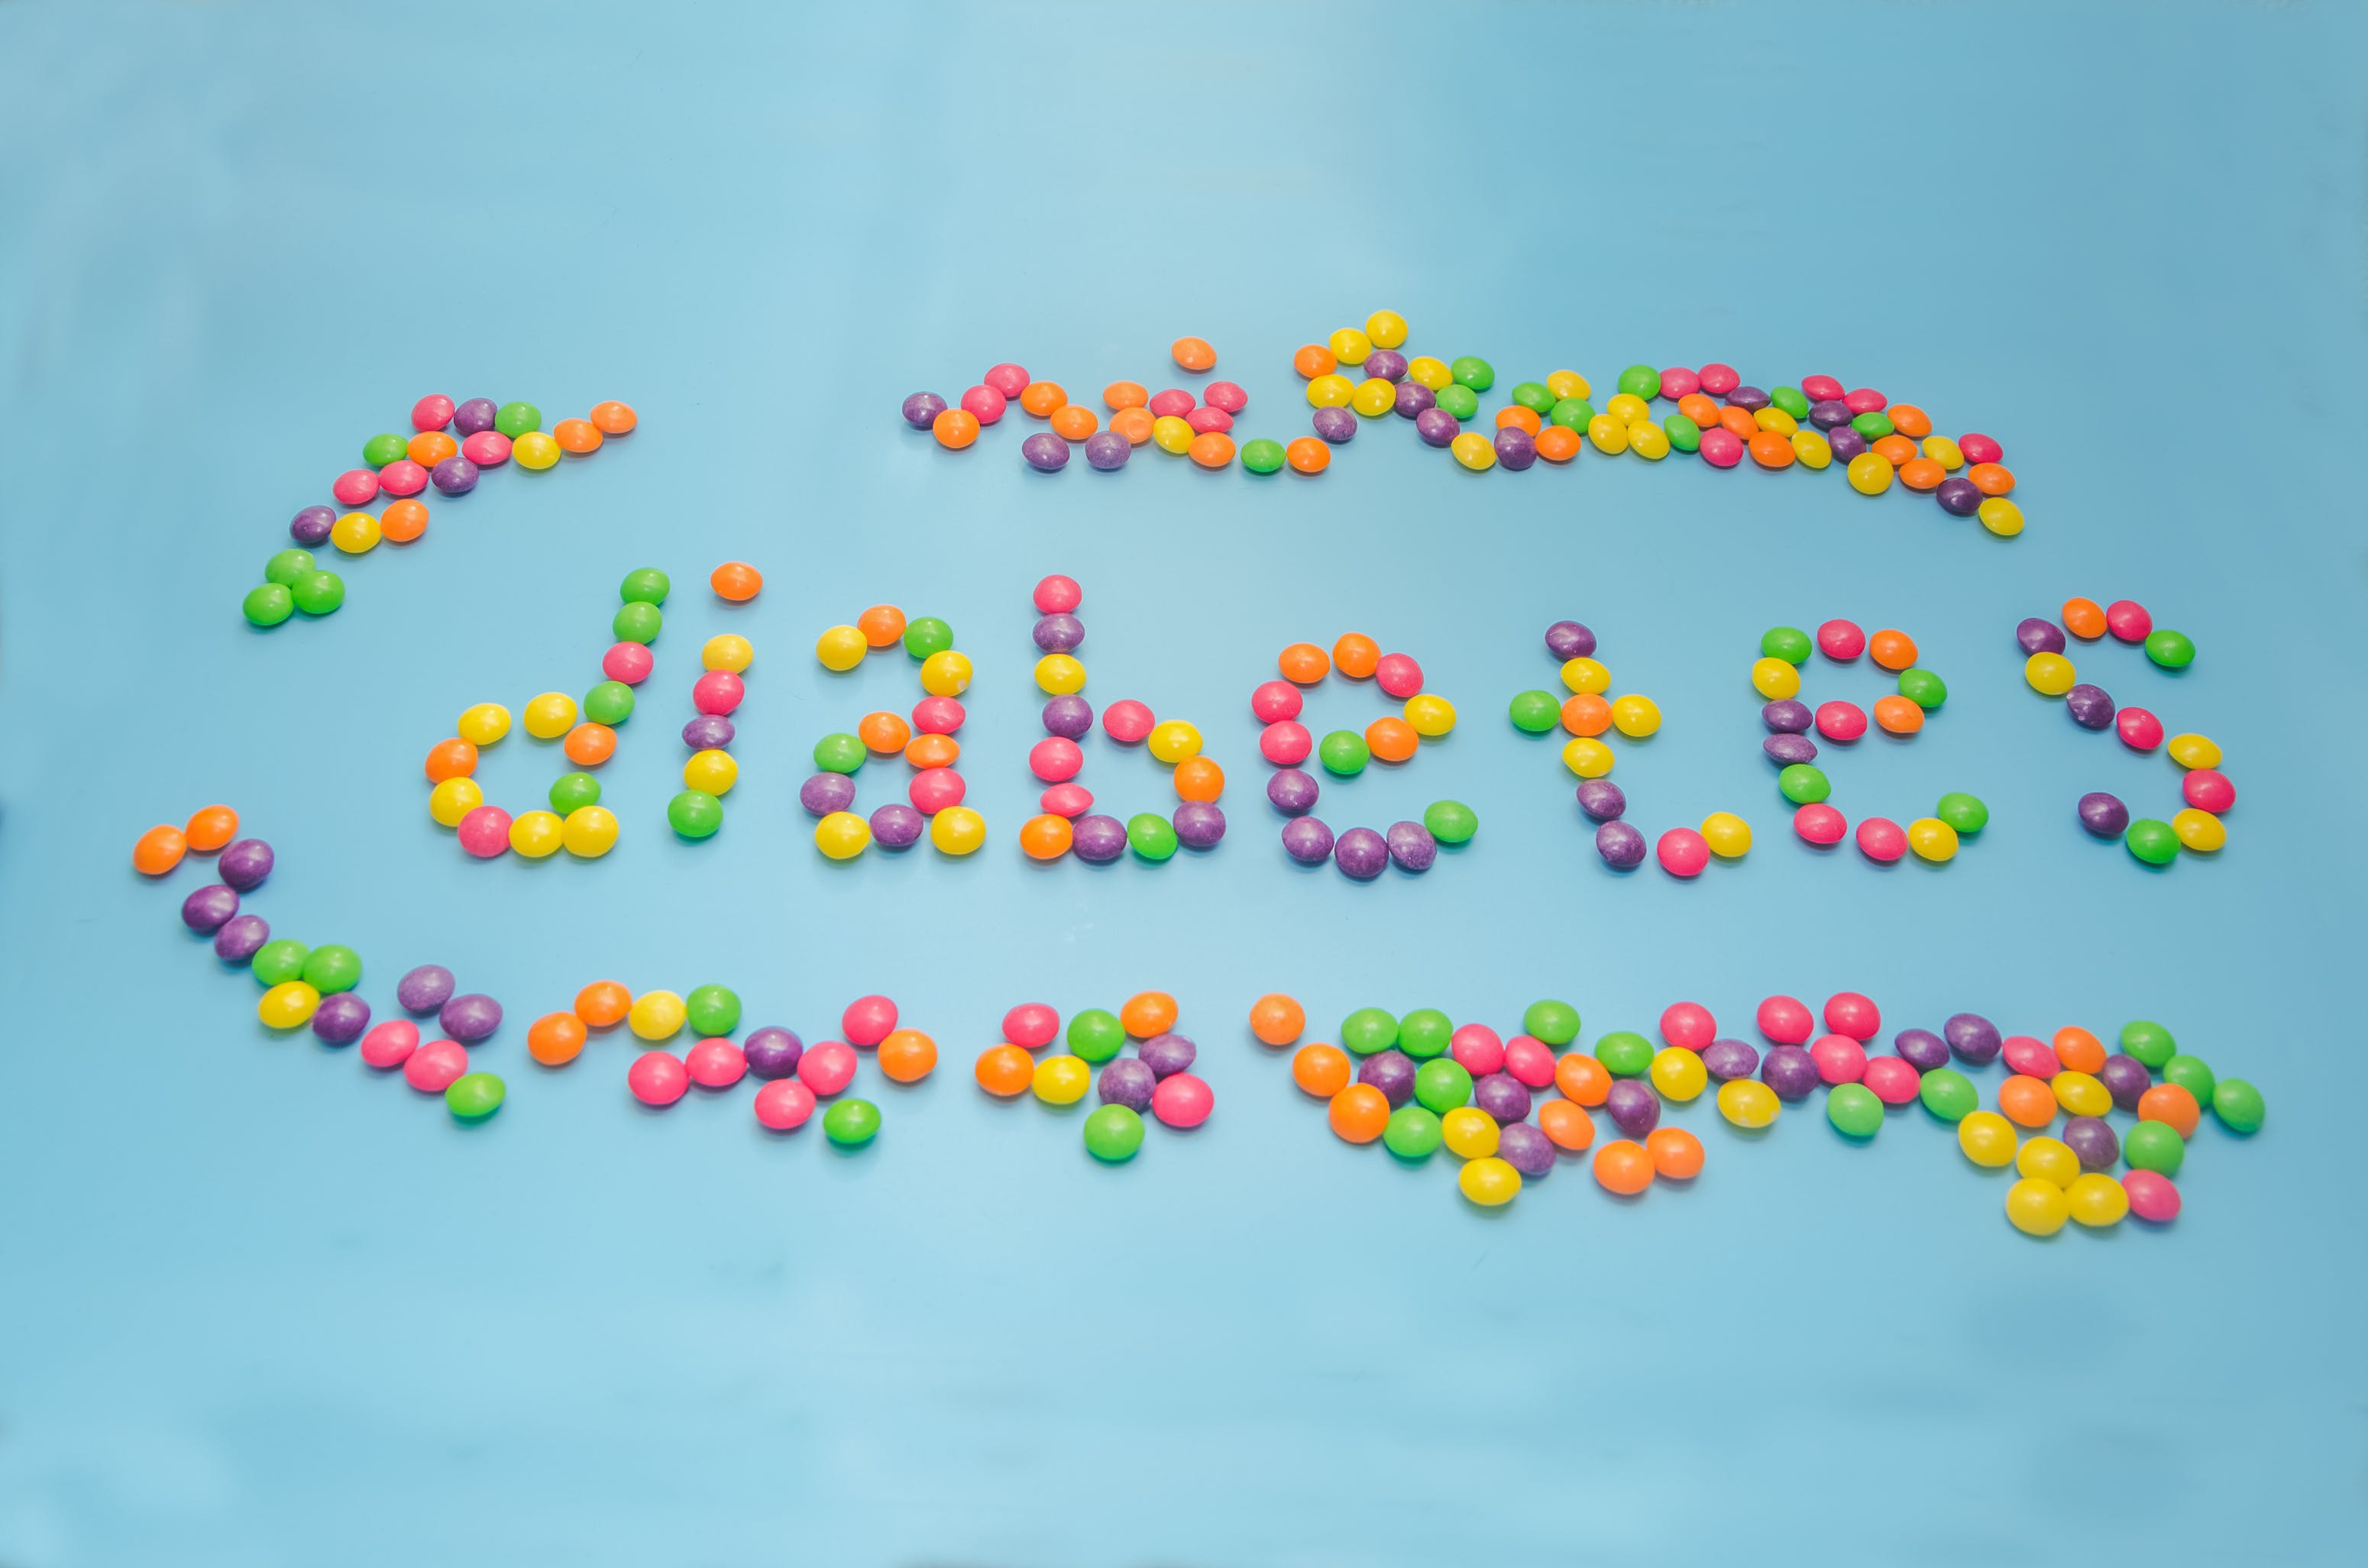 Type 2 diabetes rises dramatically among young people